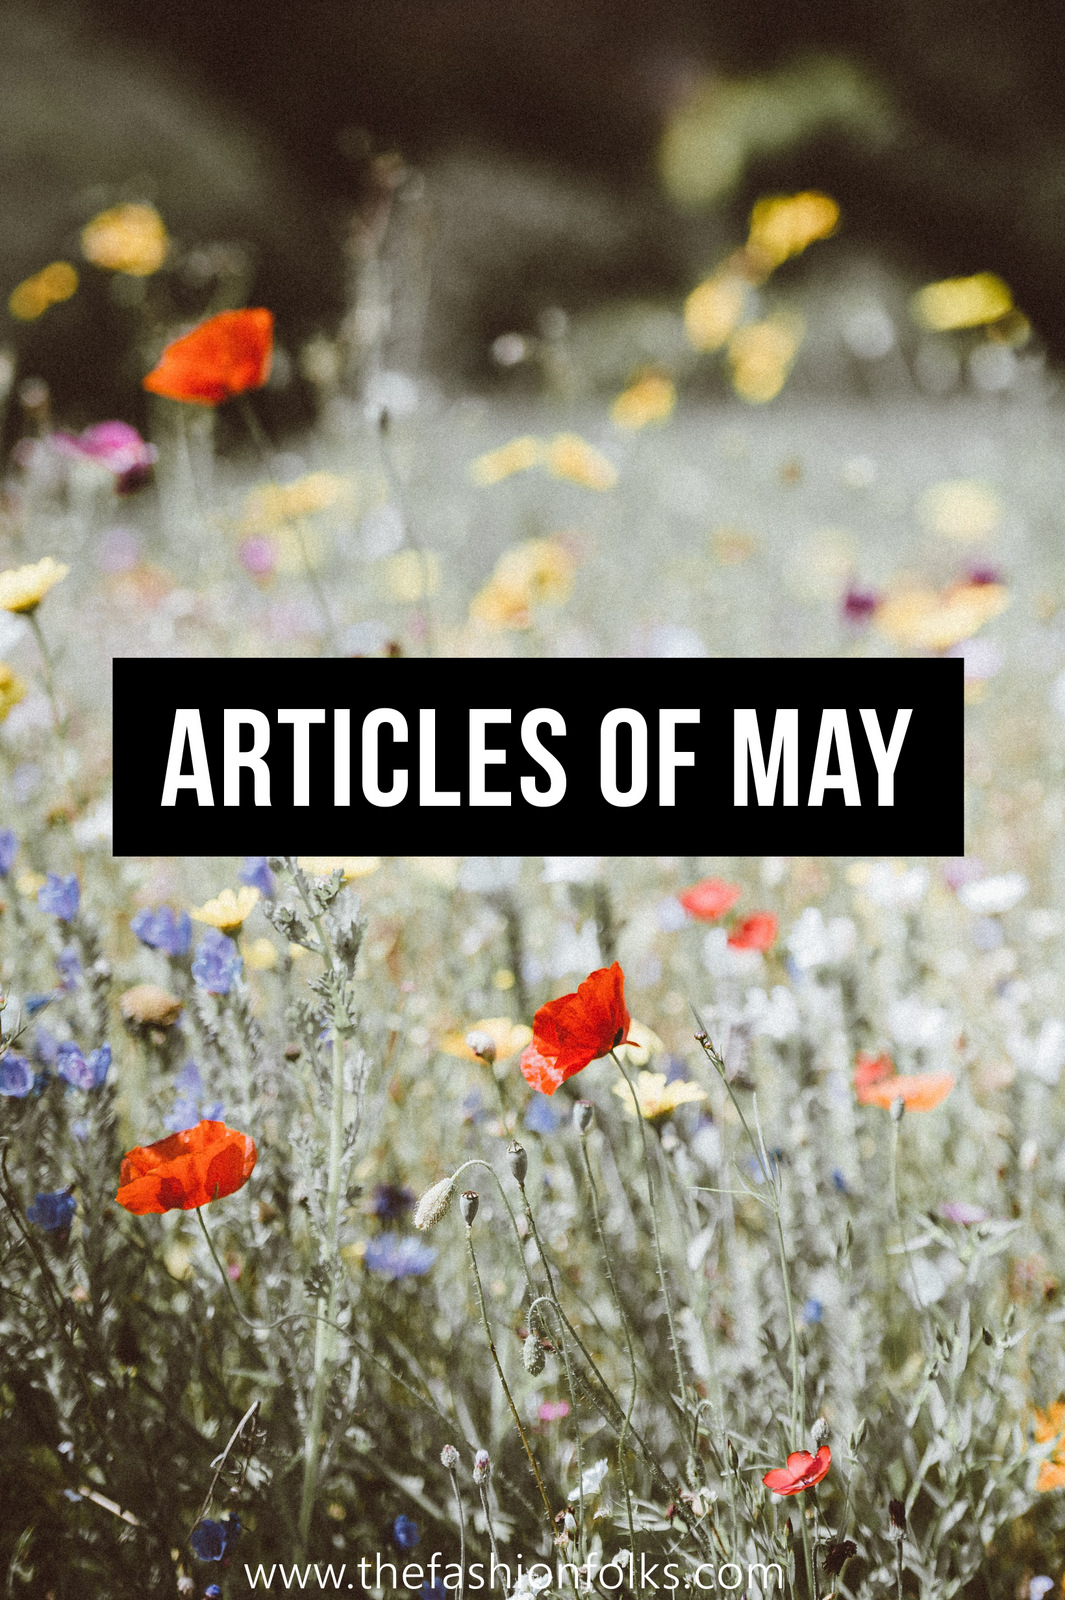 Articles of May